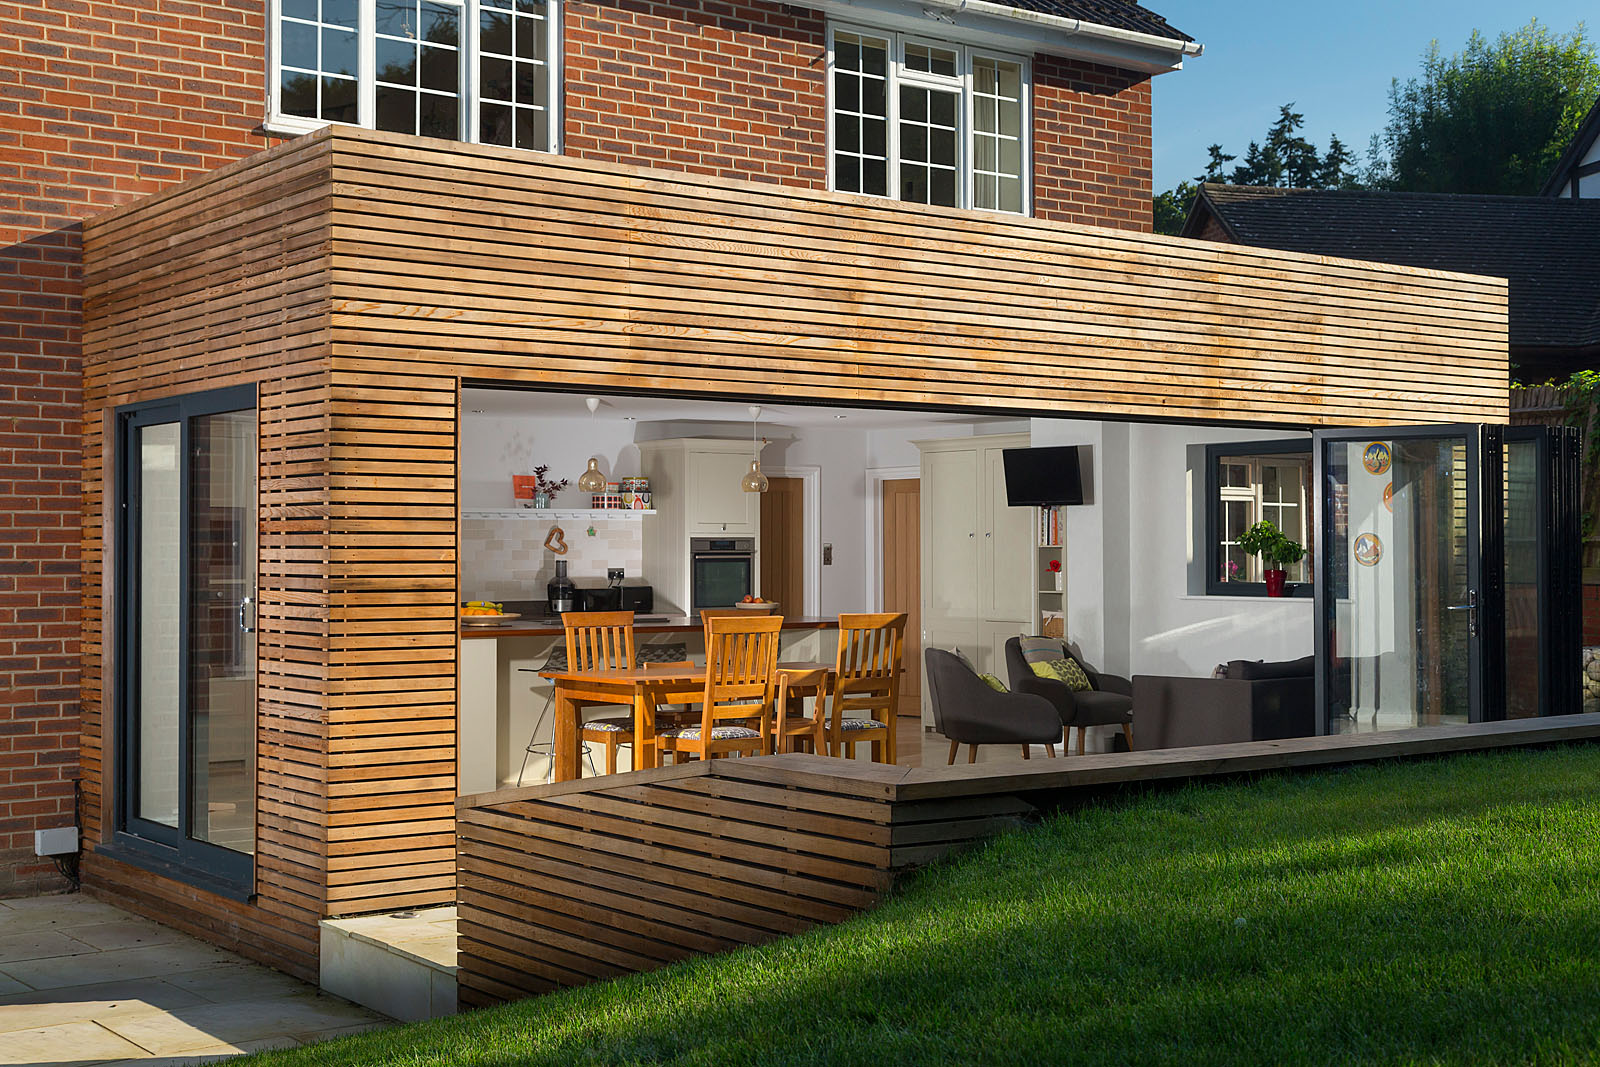 </p> <p>Find your ideal home design pro on designfor-me.com - get matched and see who's interested in your home project. Click image to see more inspiration from our design pros</p> <p>Design by Daniel, architectural designer from Tunbridge Wells, South East</p> <p>#architecture #homedesign #modernhomes #homeinspiration #extensions #extensiondesign #extensioninspiration #extensionideas #houseextension #timbercladding #bifolddoors #bifolds </p> <p>